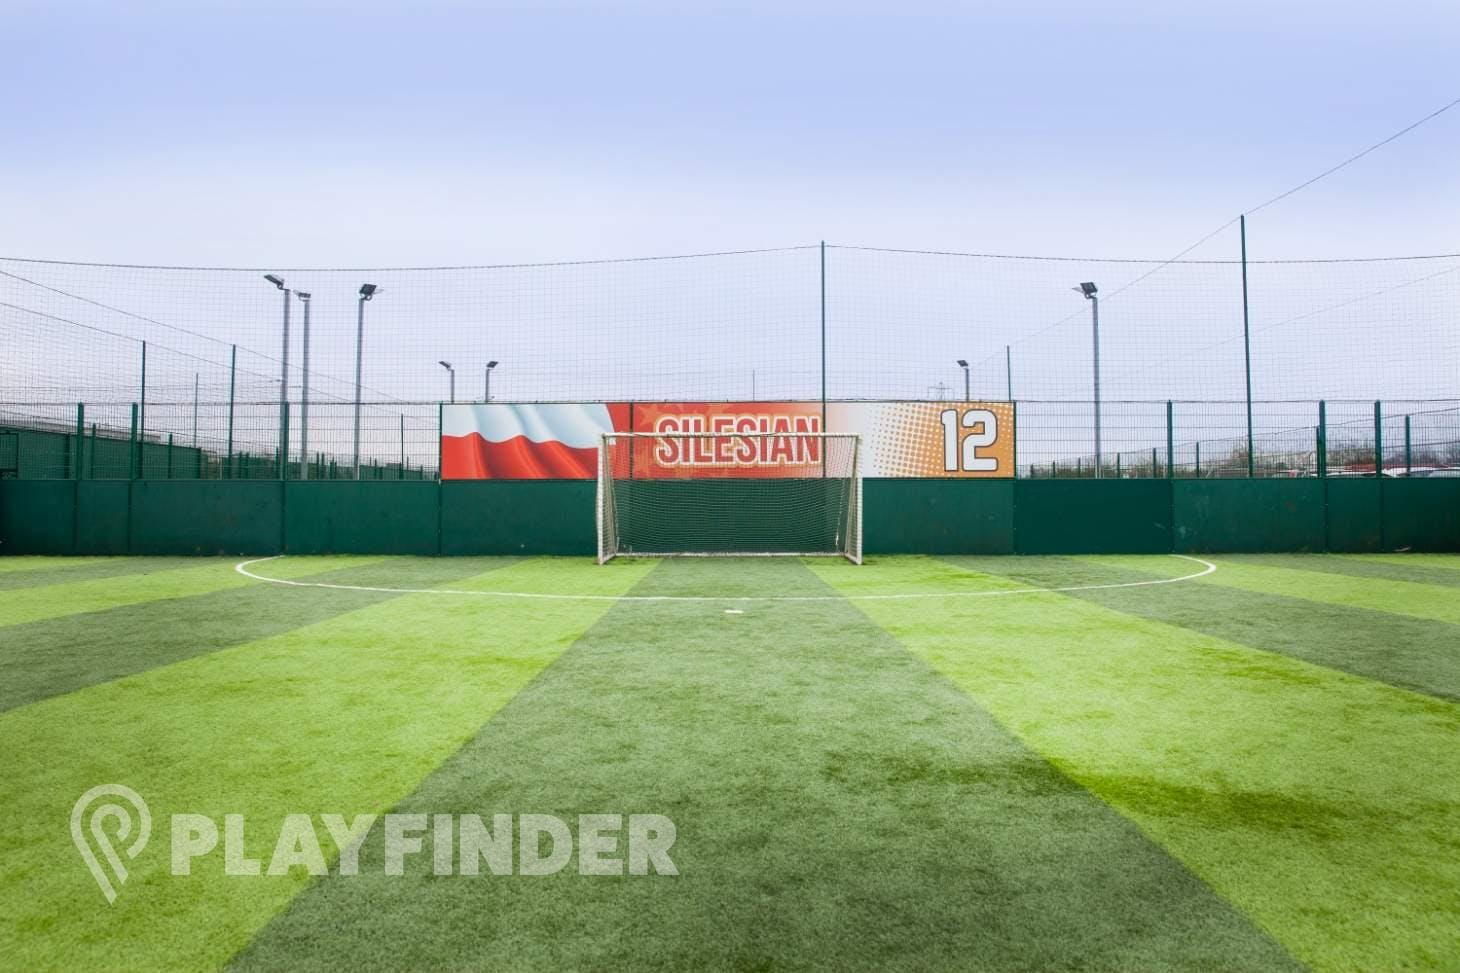 Goals Norwich 7 a side   3G Astroturf football pitch